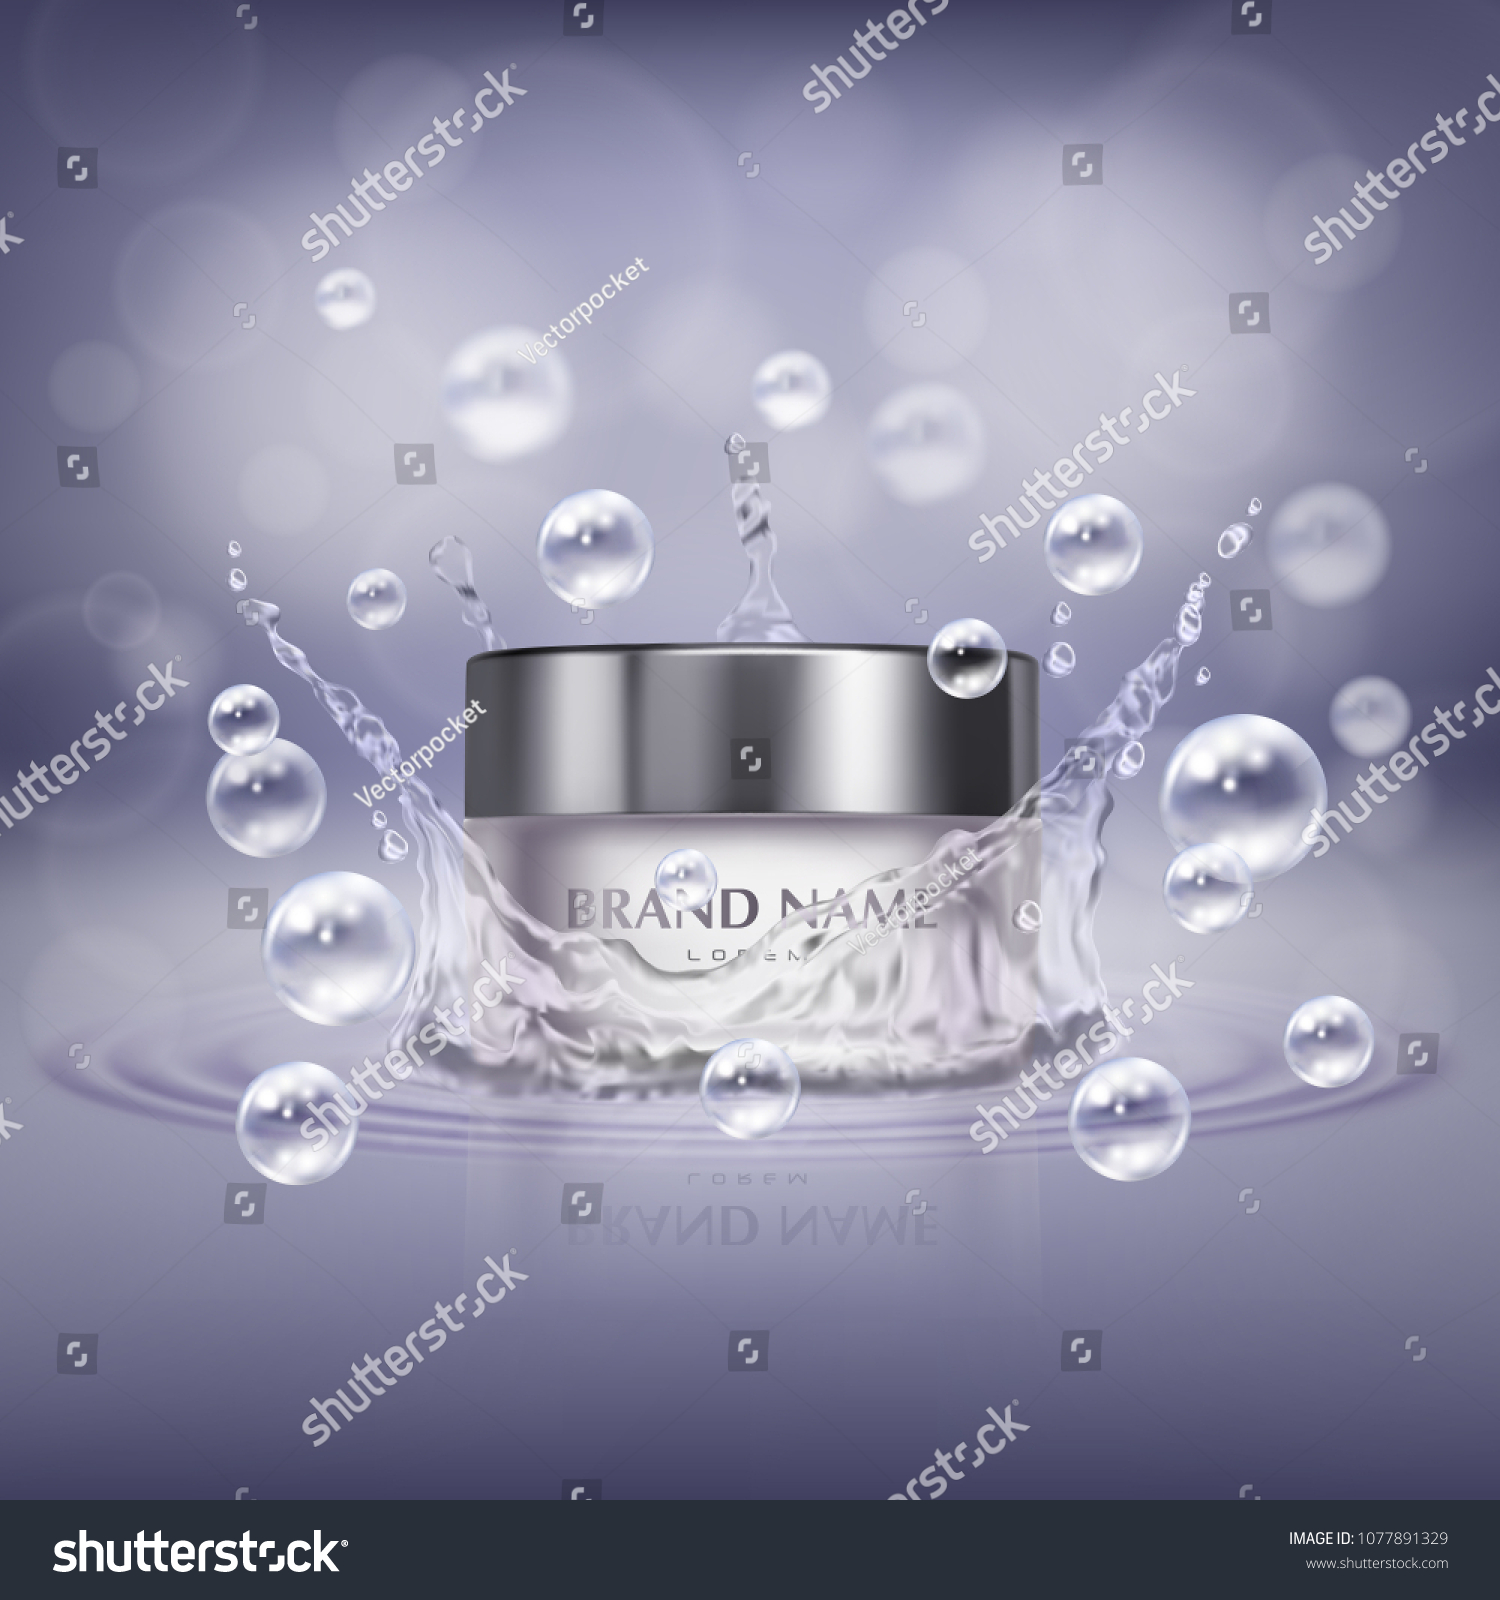 Vector Promotion Banner Realistic Glass Jar Stock Vector Royalty Free 1077891329